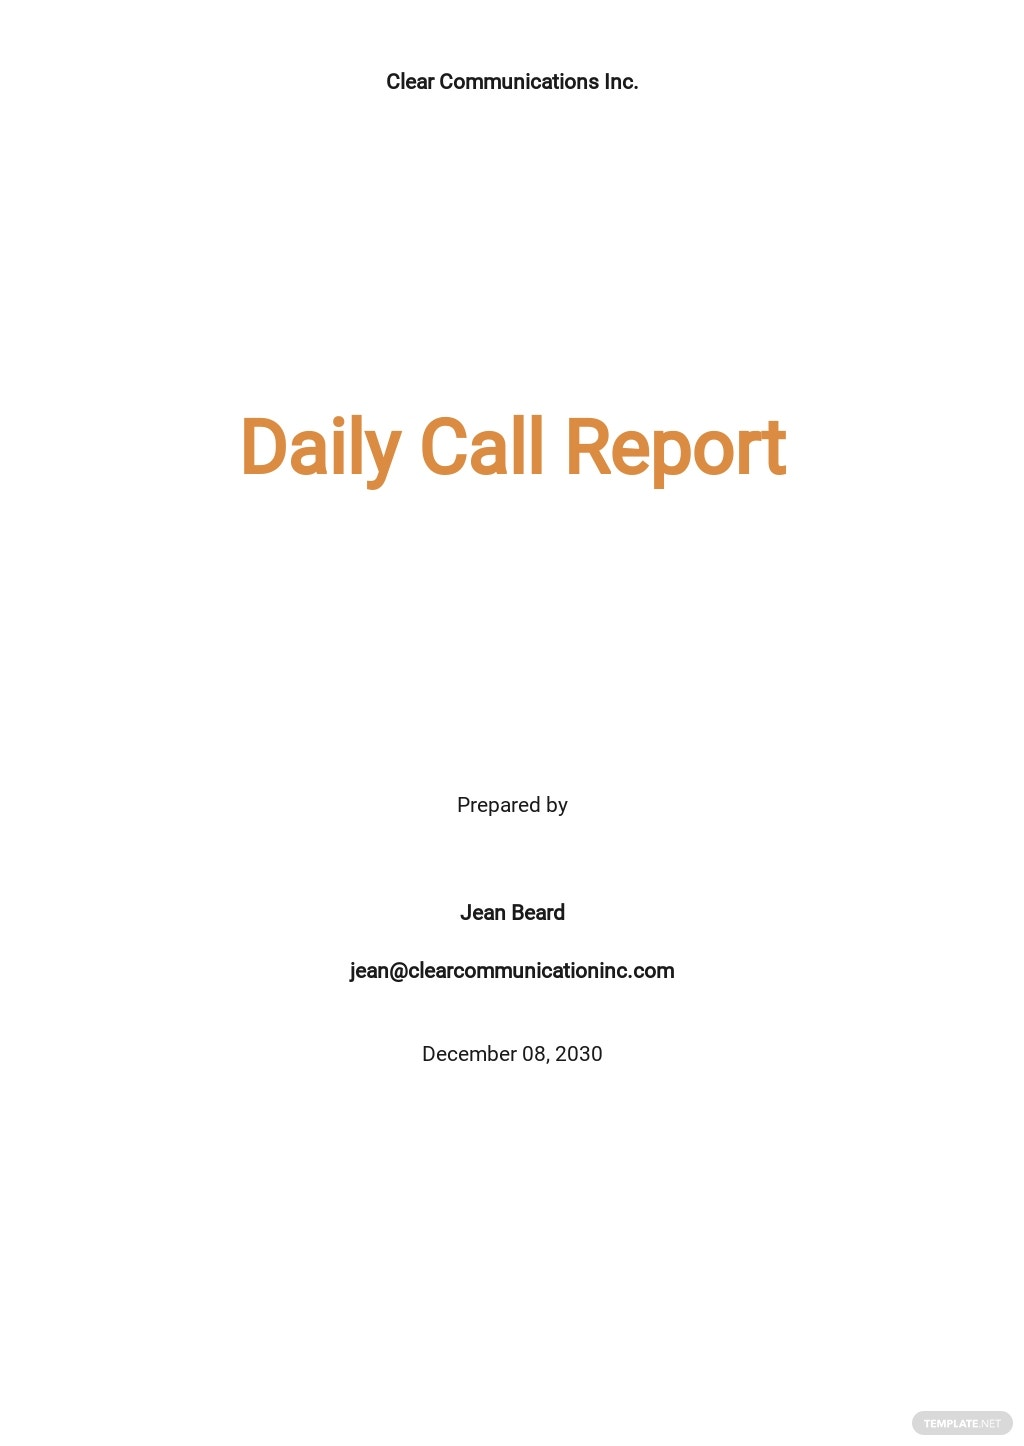 Daily Call Report Template